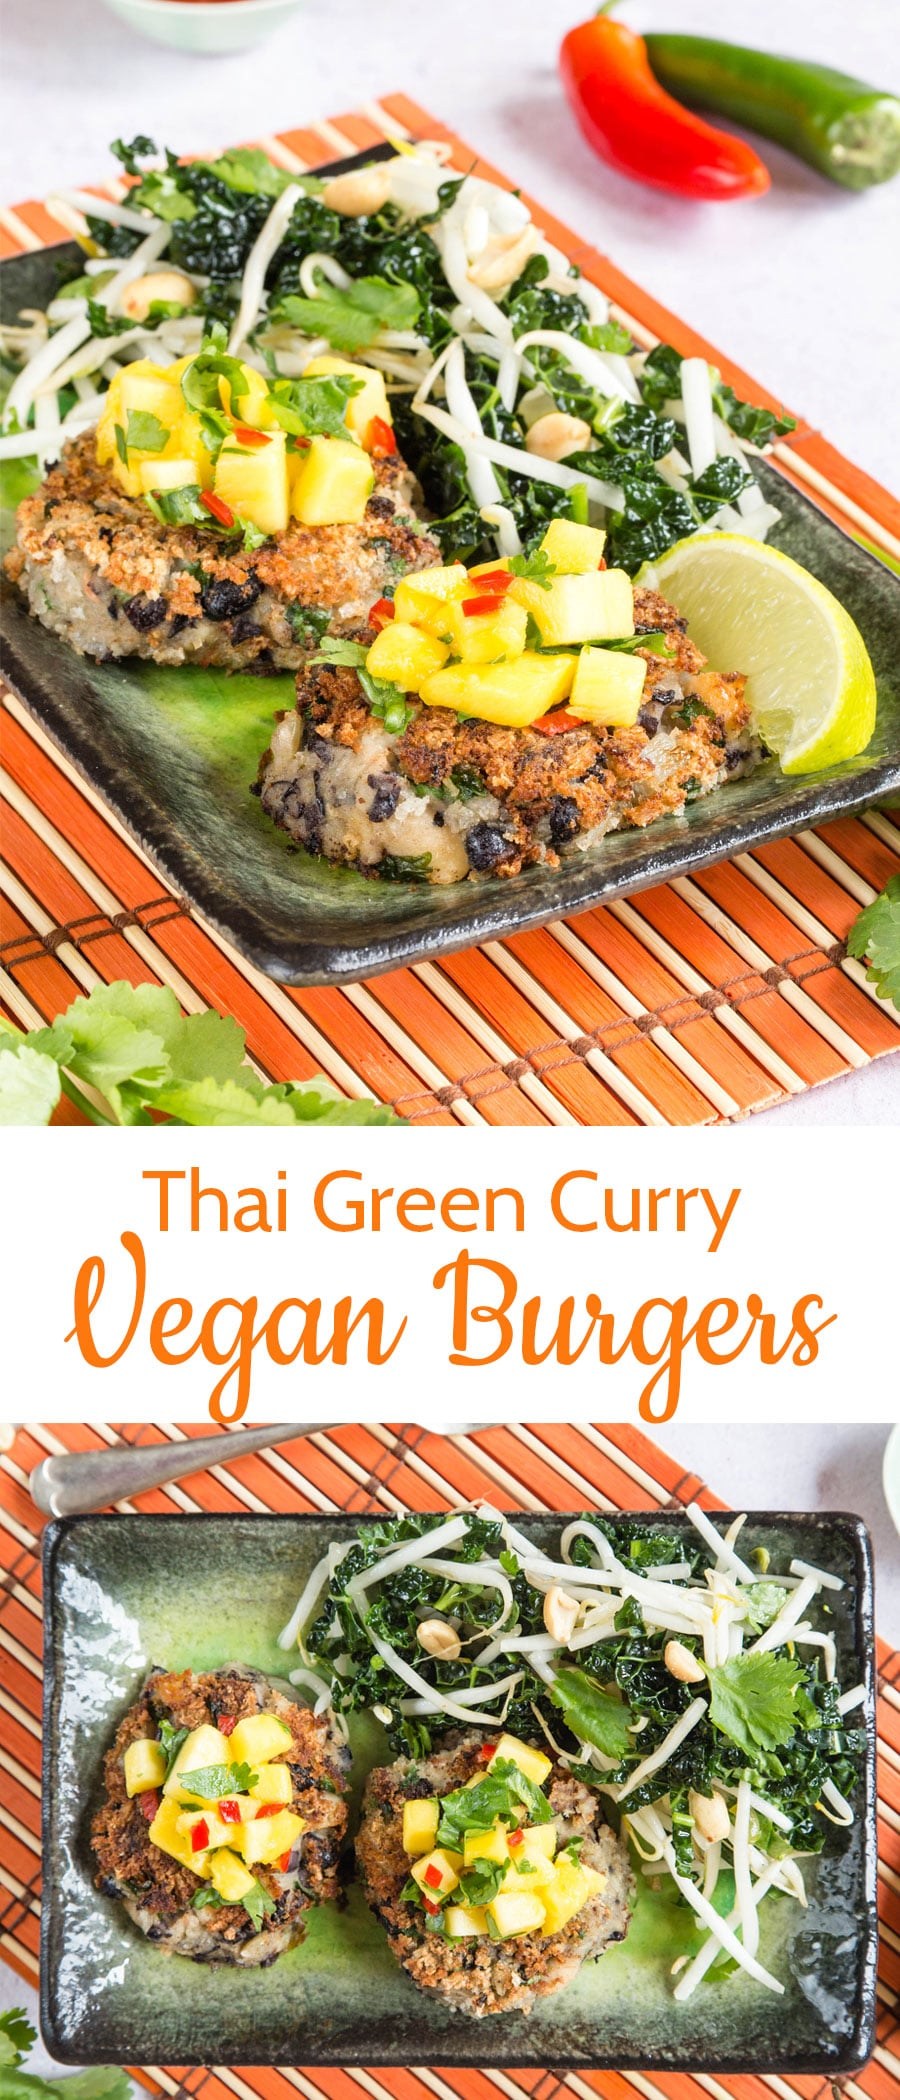 Thai Green Curry Vegan Burgers on a platter topped with chutney with a text overlay